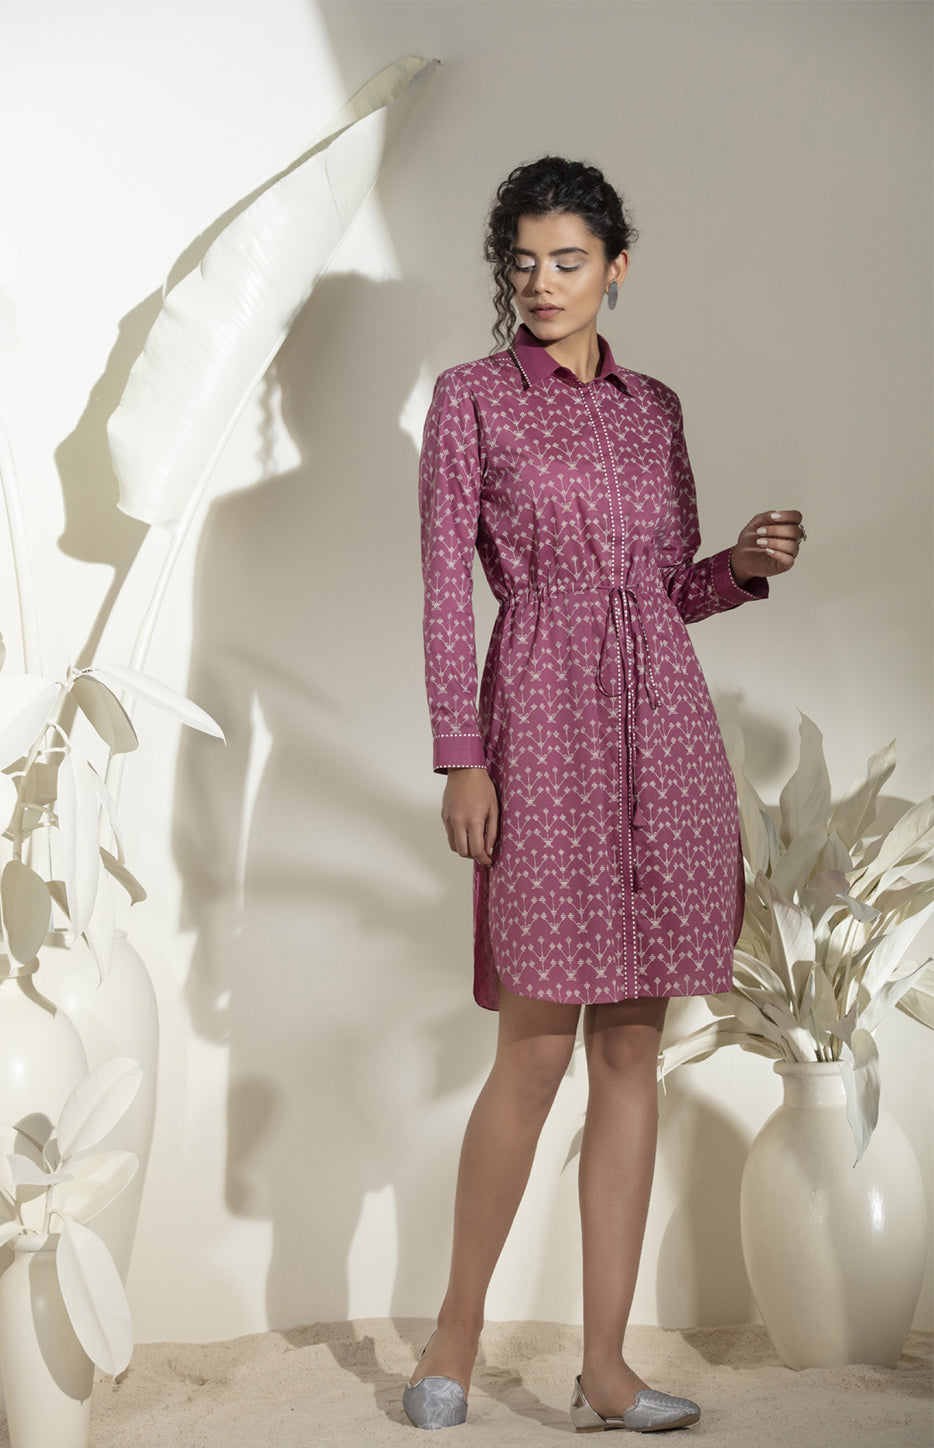 Falsa Screen Printed Shirt Dress - 3561